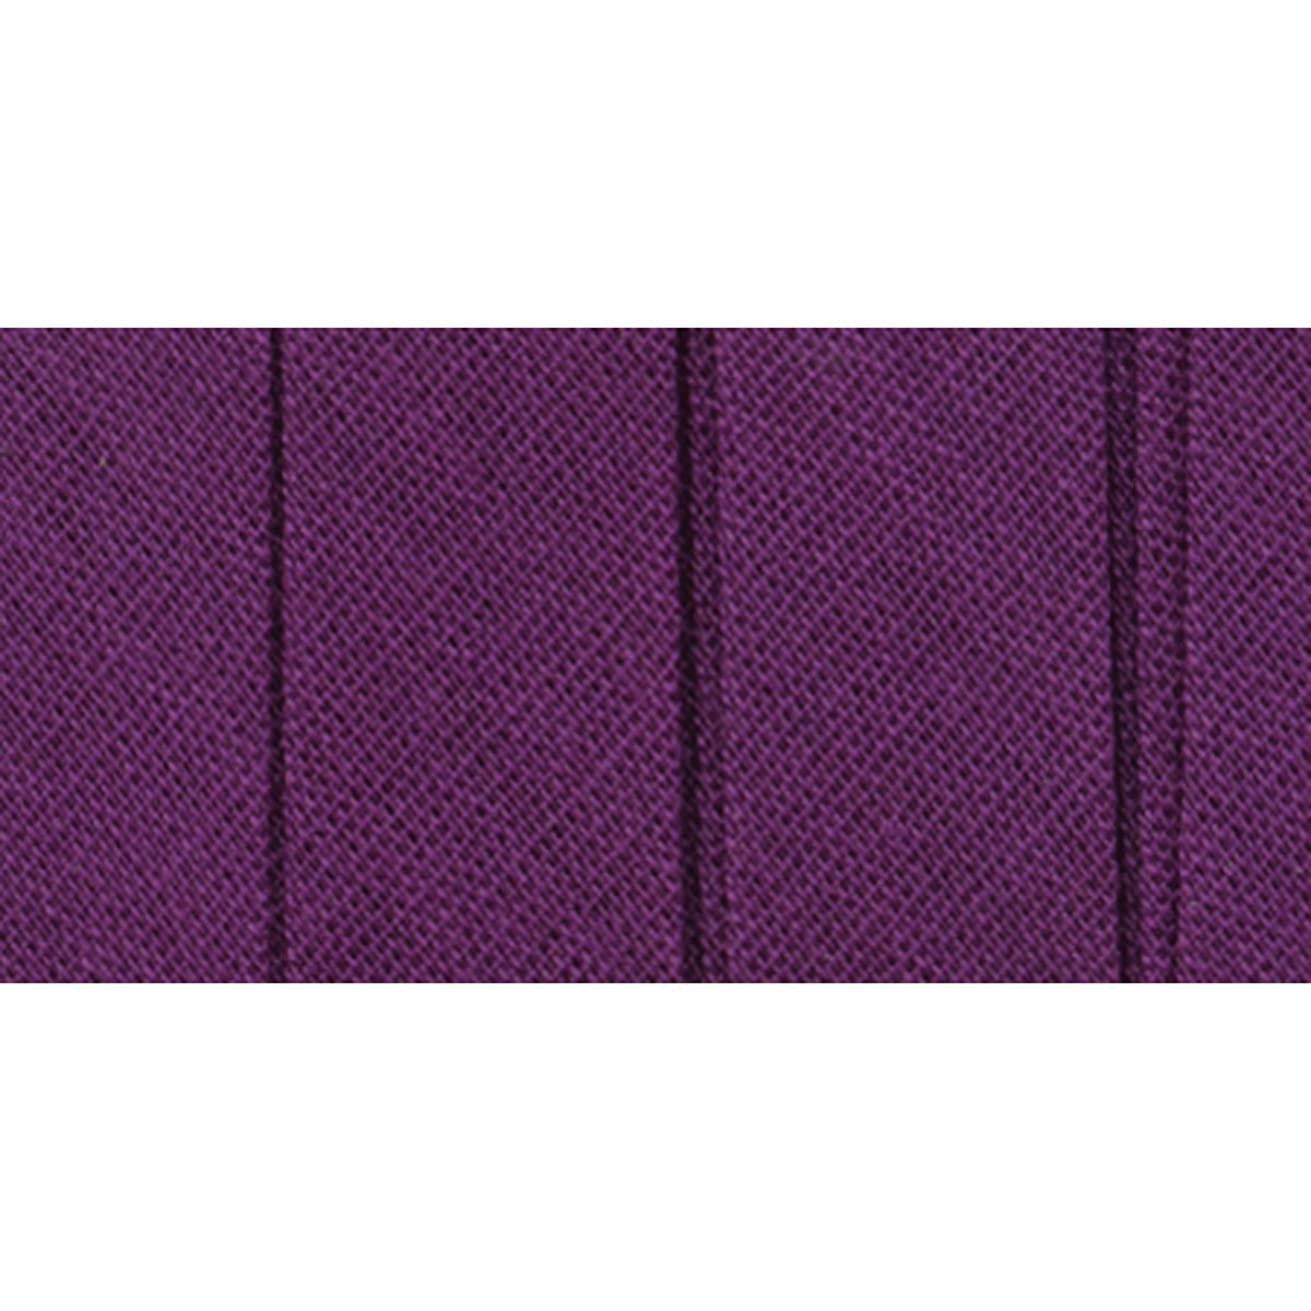 Wrights 117-200-572 Single Fold Bias Tape, Plum, 4-Yard